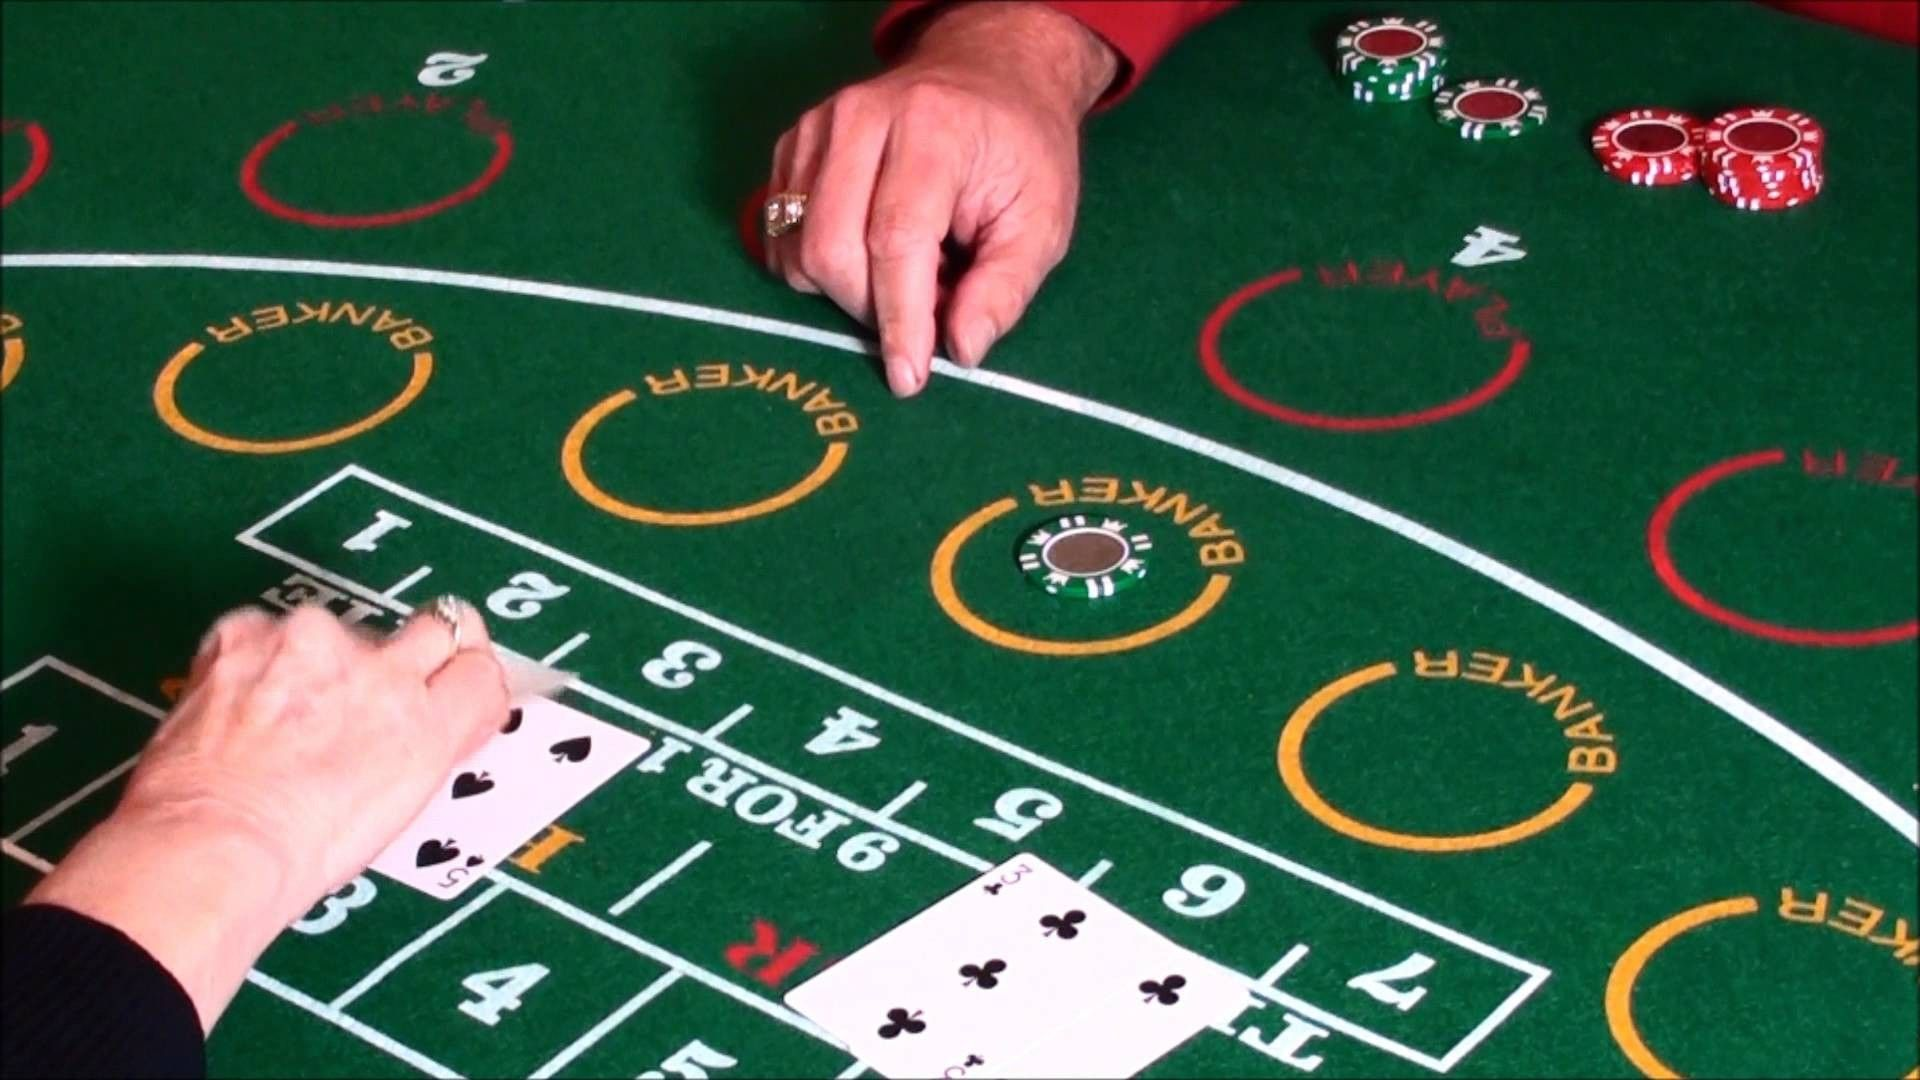 Baccarat games consists of legal authentication gaming features